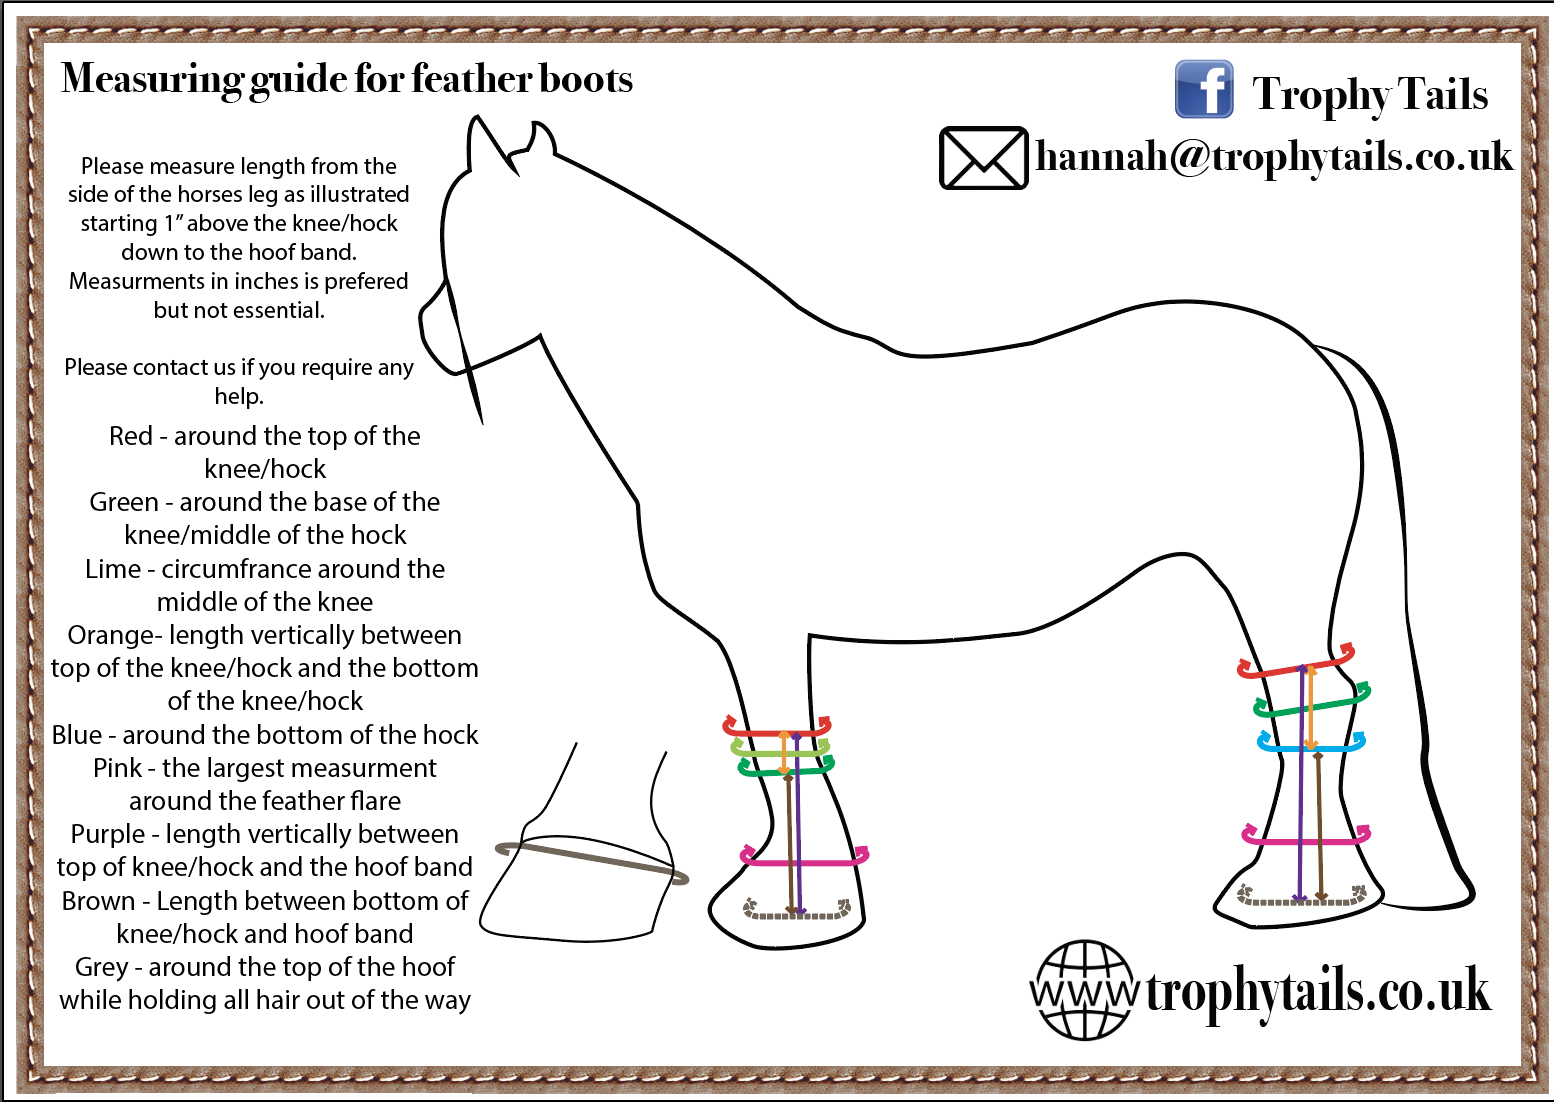 trophy tails feather boots measuring guide